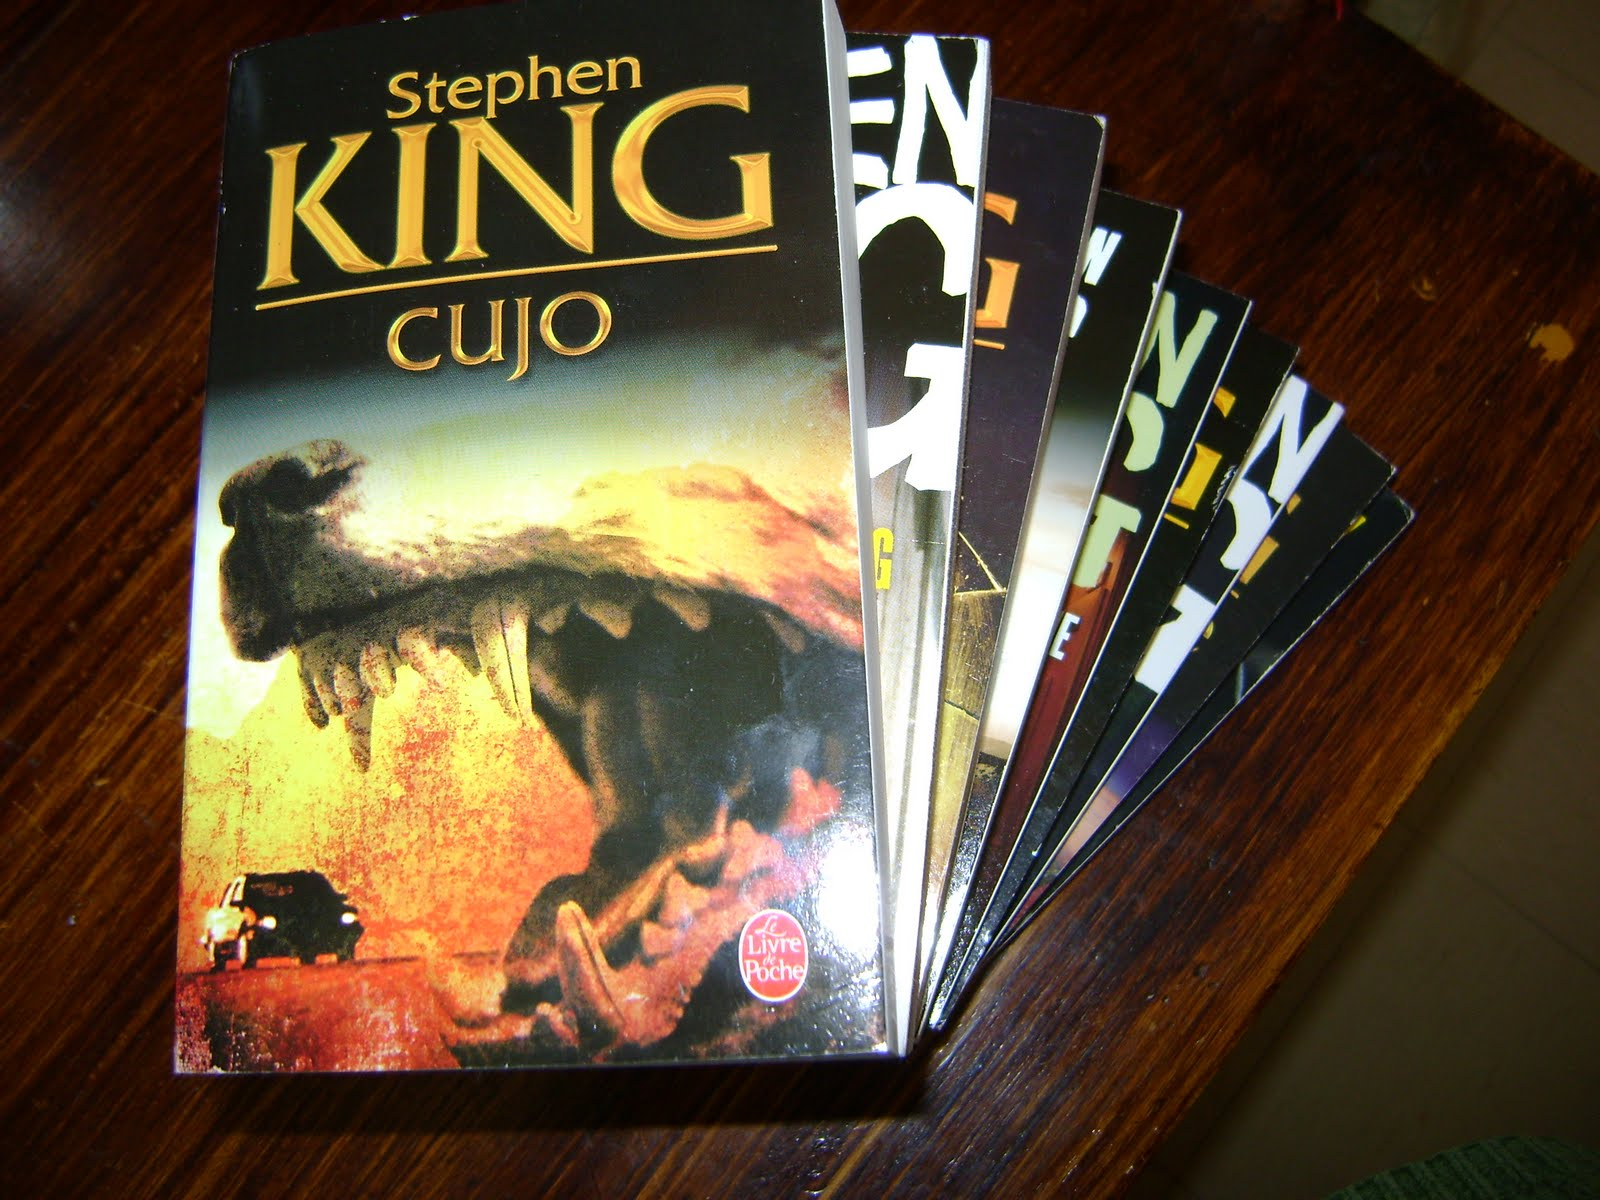 an analysis of the book cujo by stephen king Pulling a story directly out of my own nightmares, stephen king's cujo is a story about a well mannered st bernard that gets bitten by a rabies positive bat and becomes rabid himself, then terrorizes the small town of castle rock, maine.